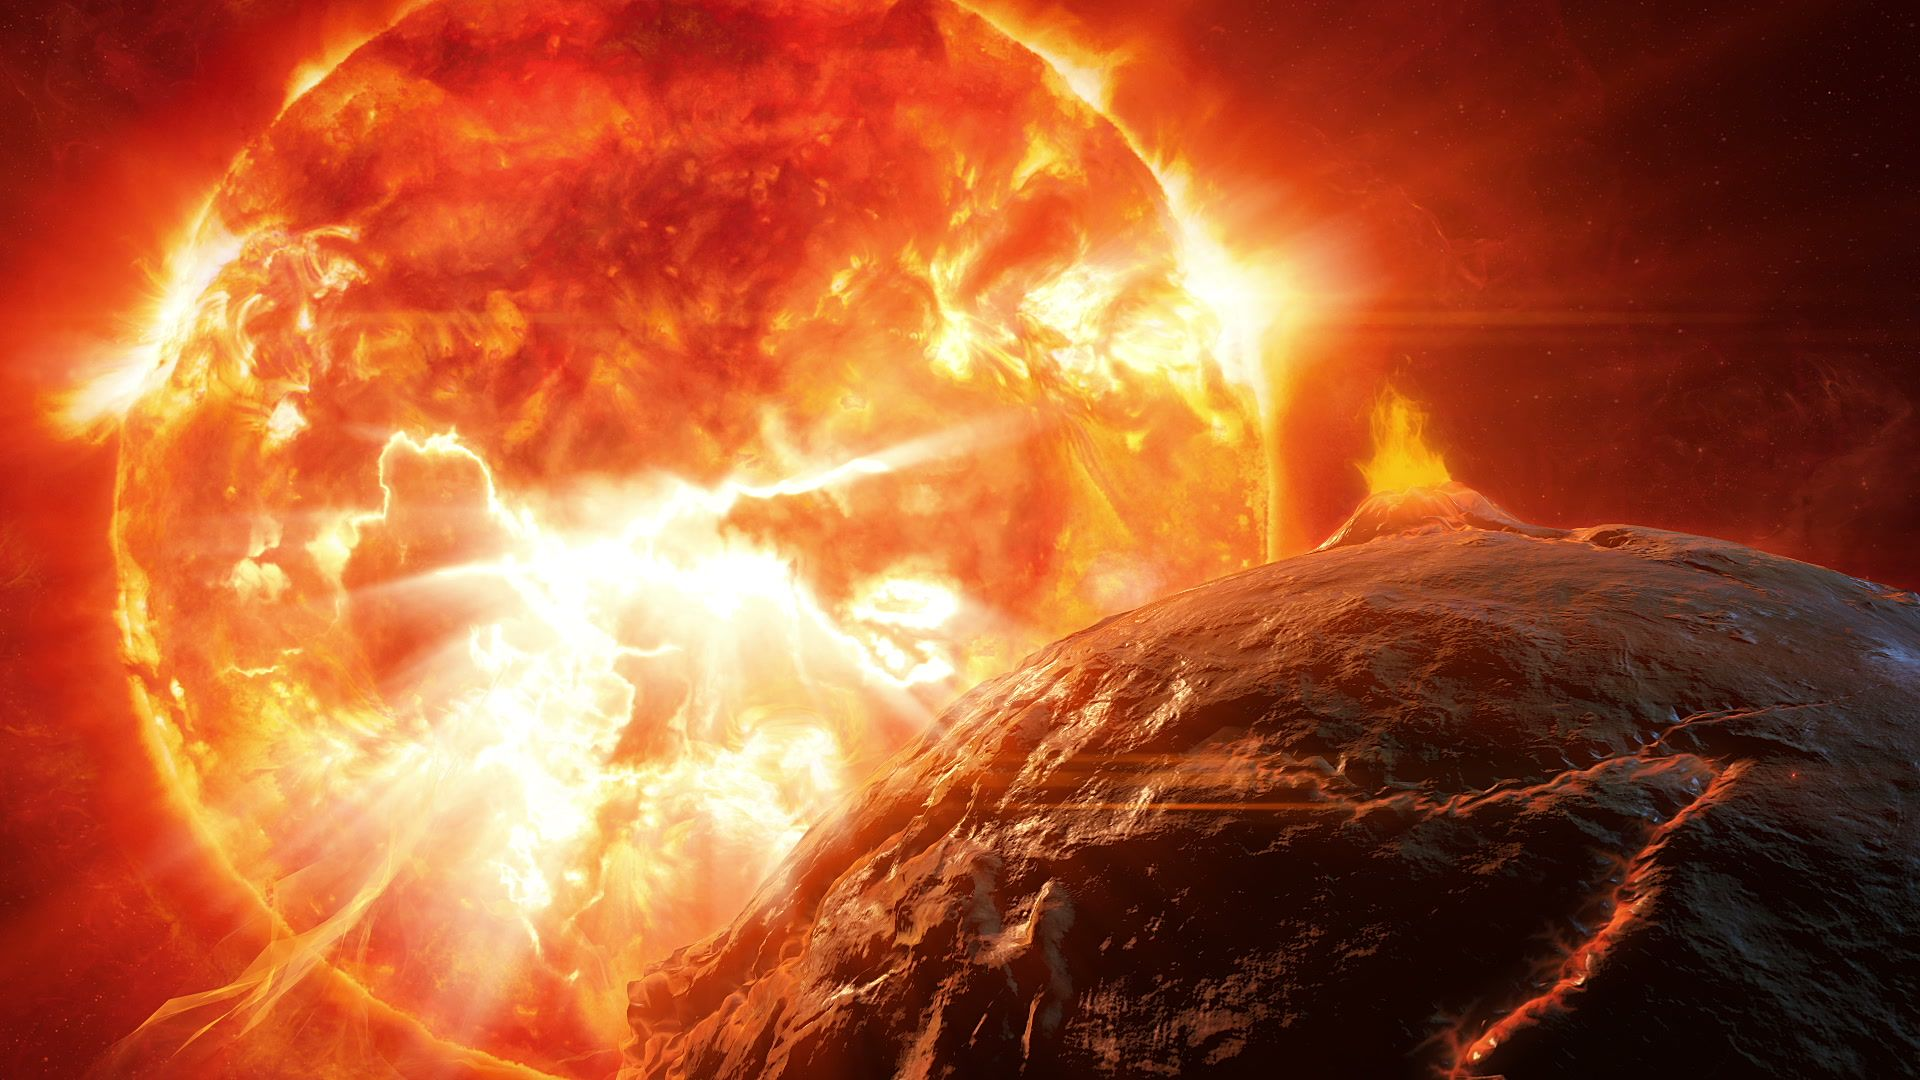 The Dramatic Explosion Of The Red Giant Star Stock Footage Red Explosion Dramatic Giant Red Giant Giant Star Explosion